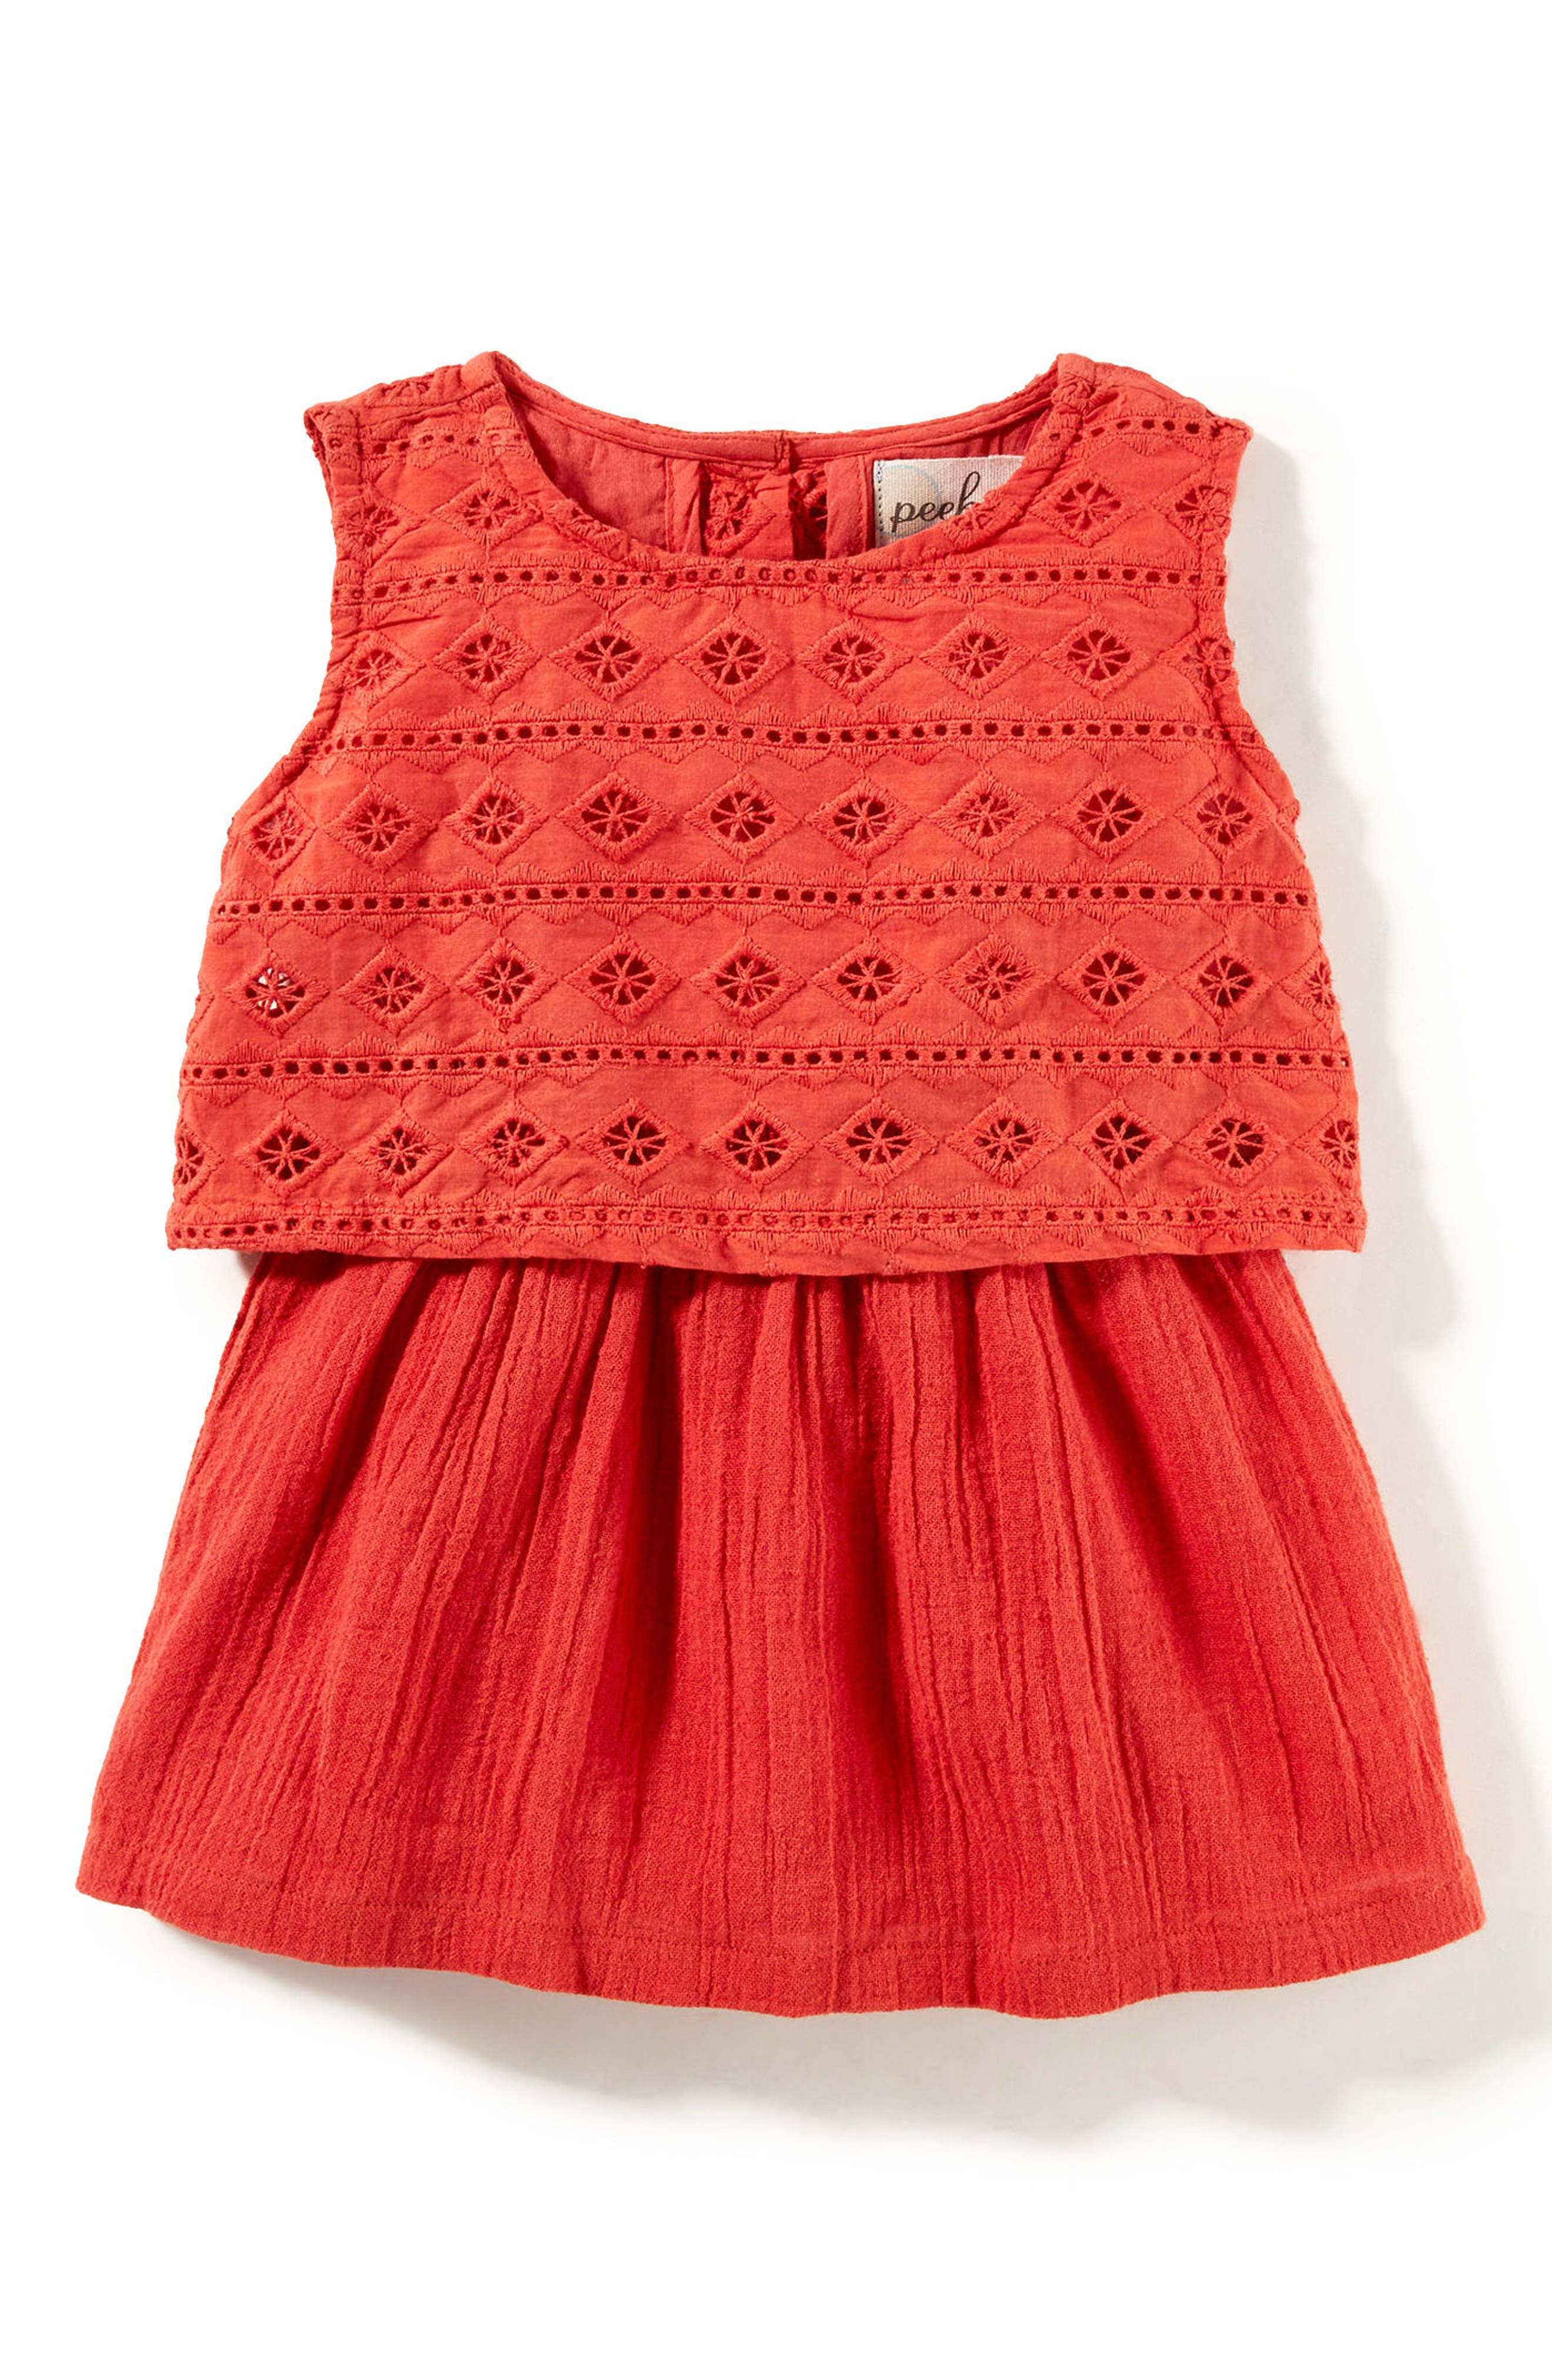 Main Image - Peek Embroidered Popover Dress (Baby Girls)